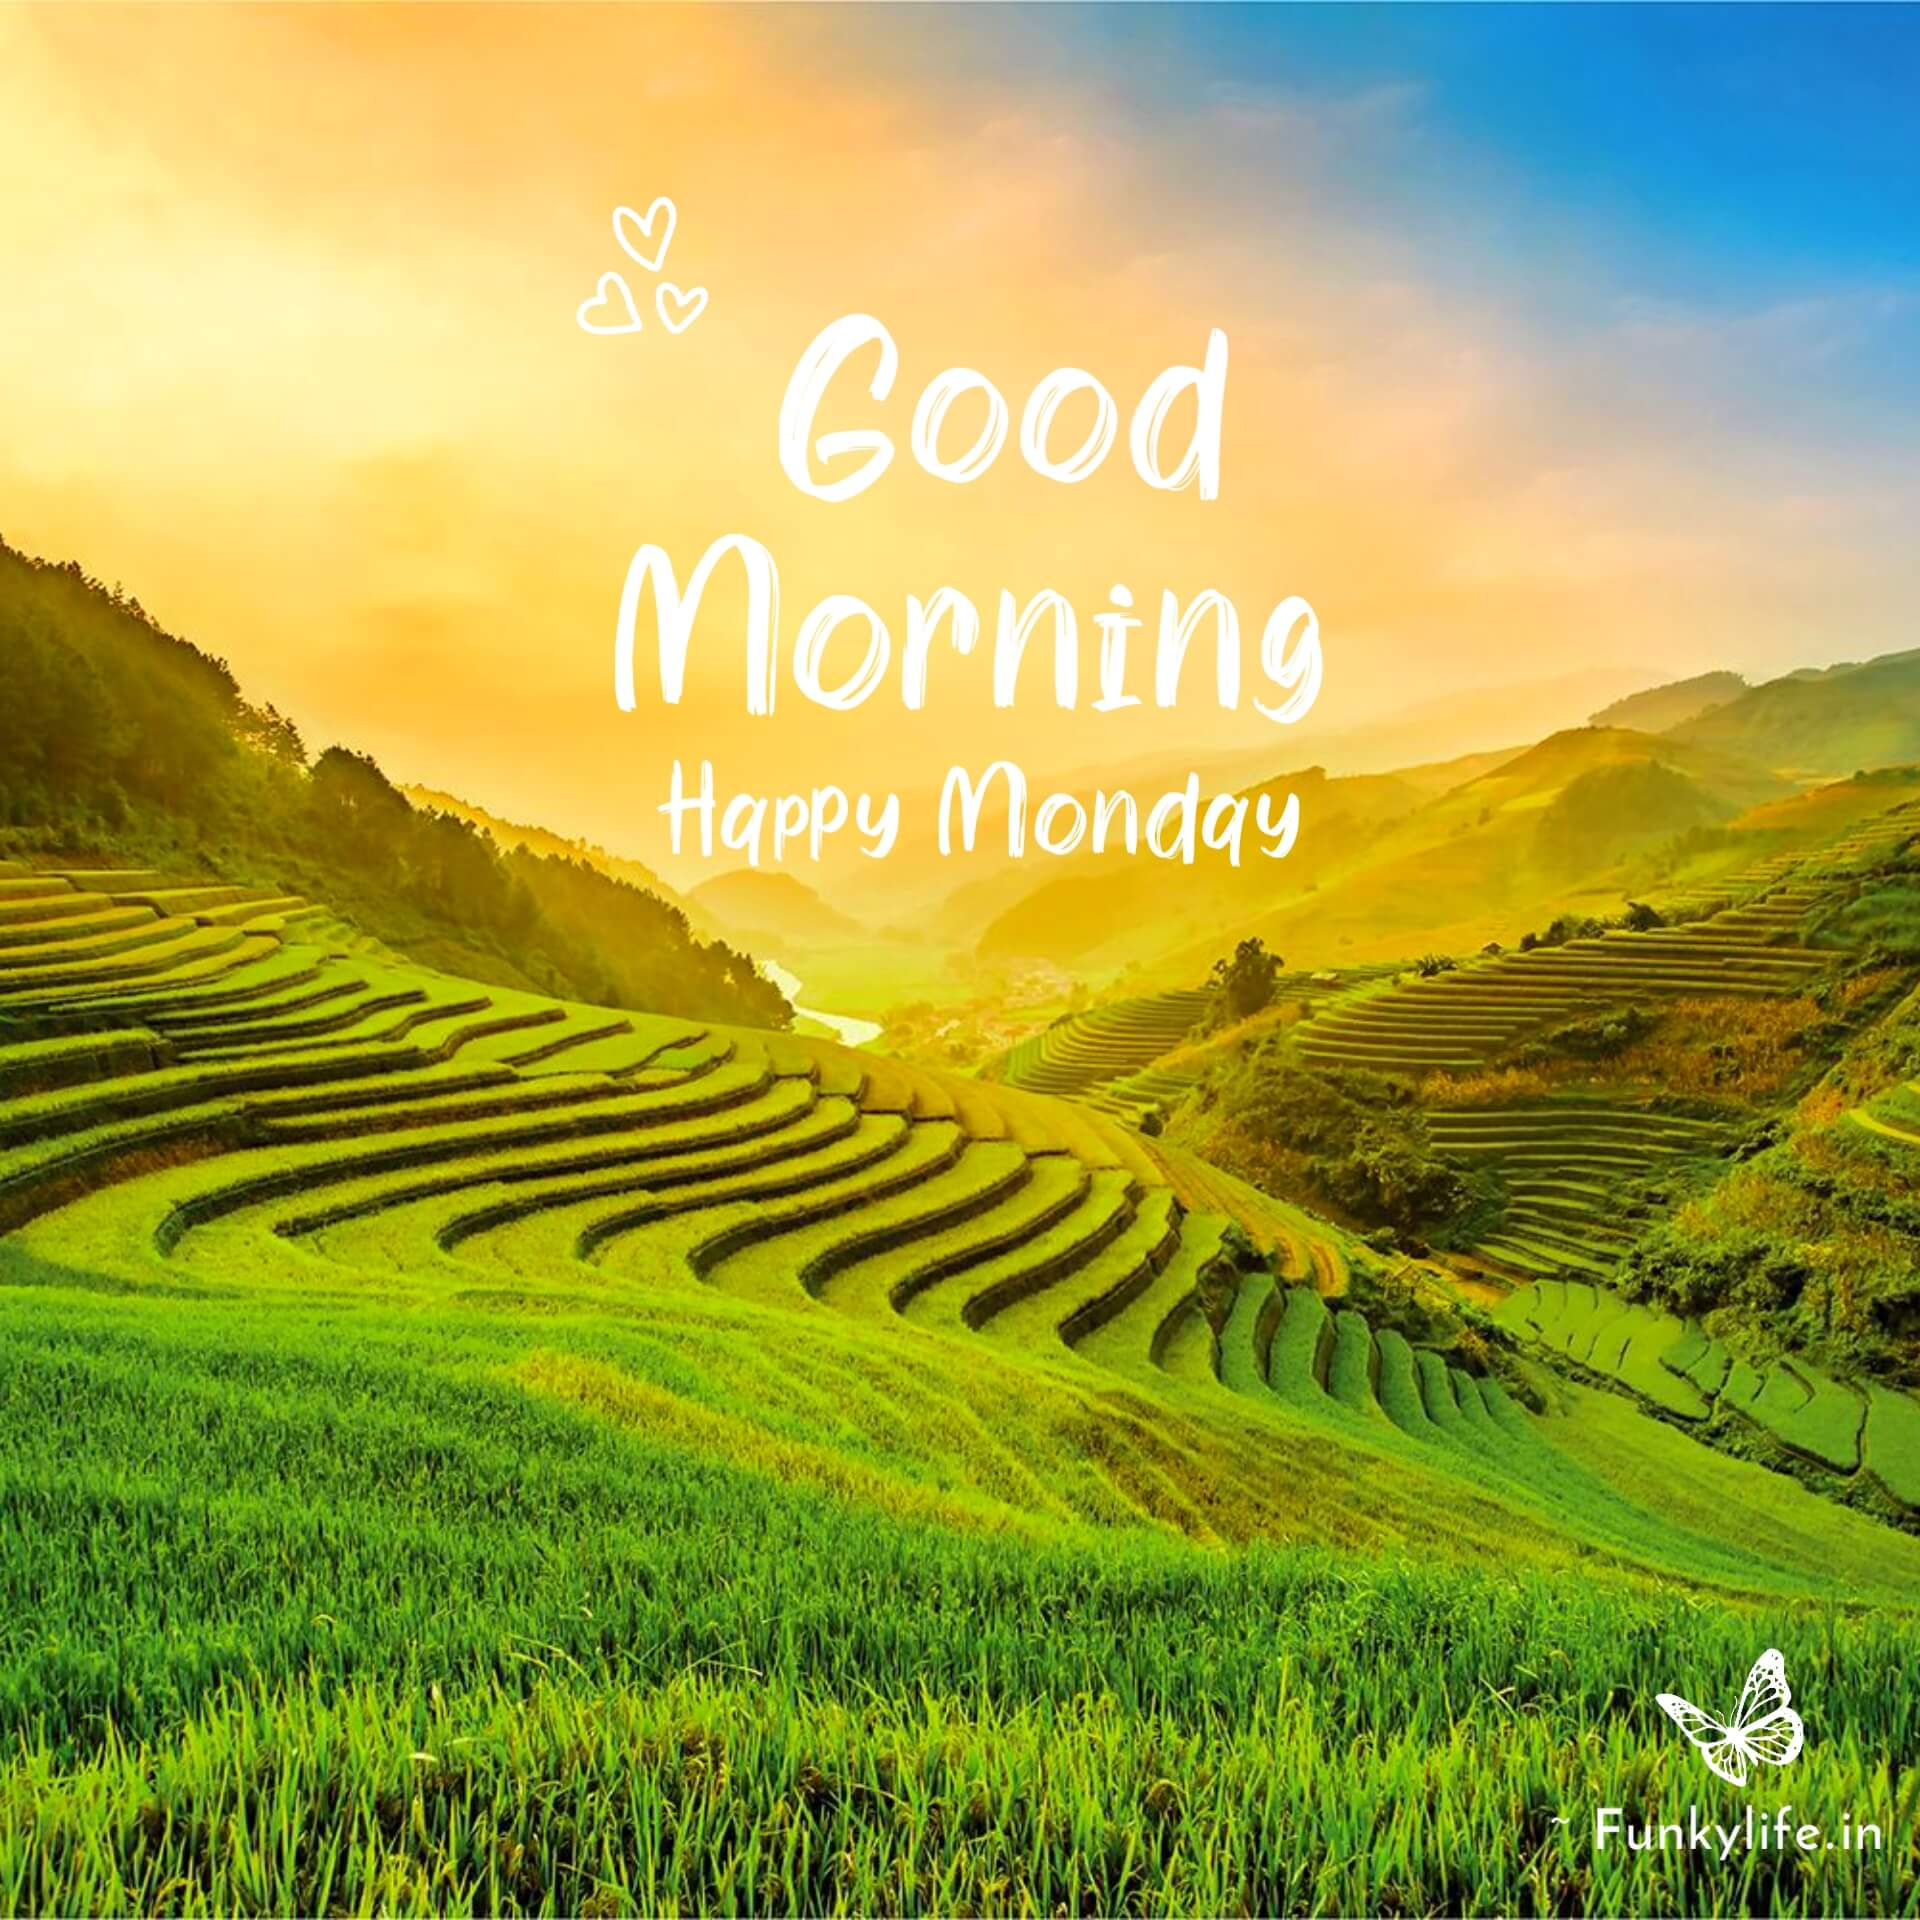 Good Morning Images for Monday